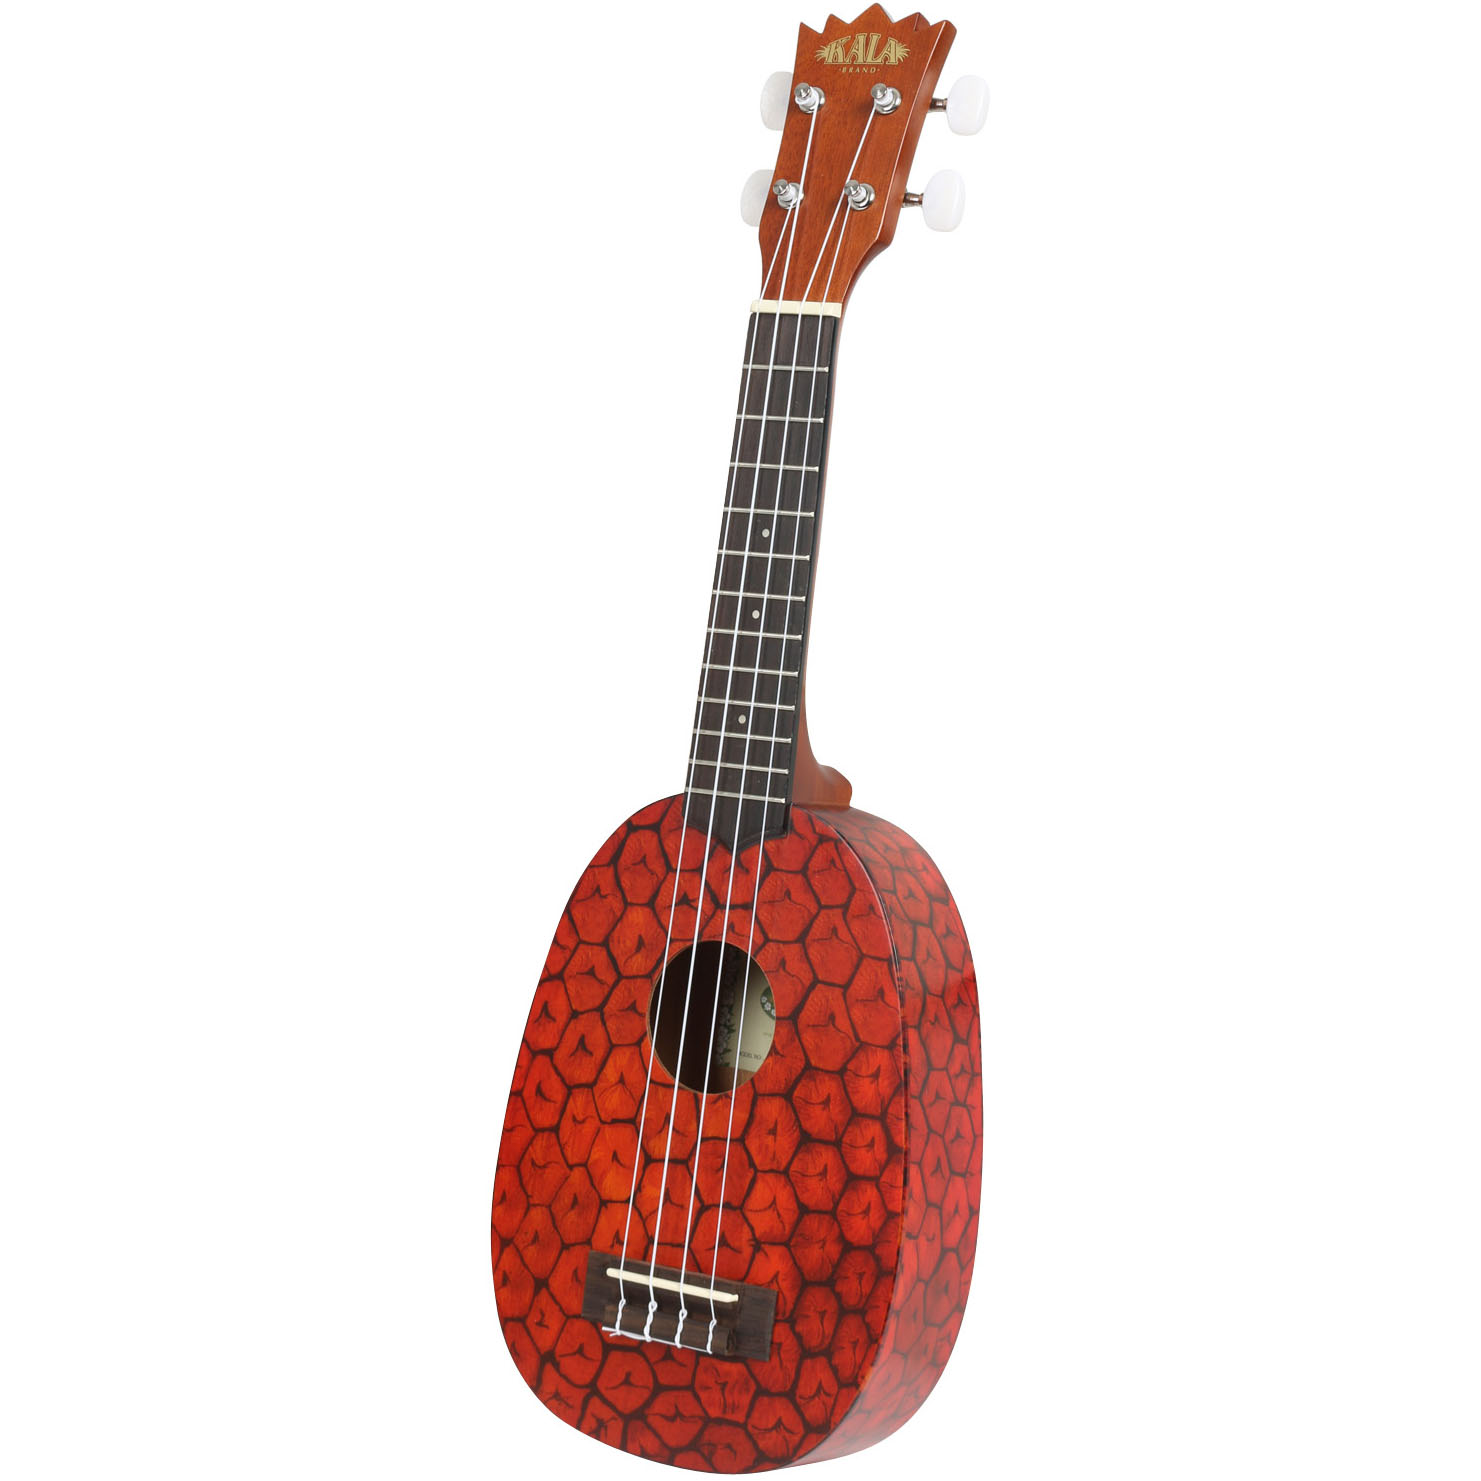 Kala KA PSS Novelty Series Sopranukulele, Pineapple